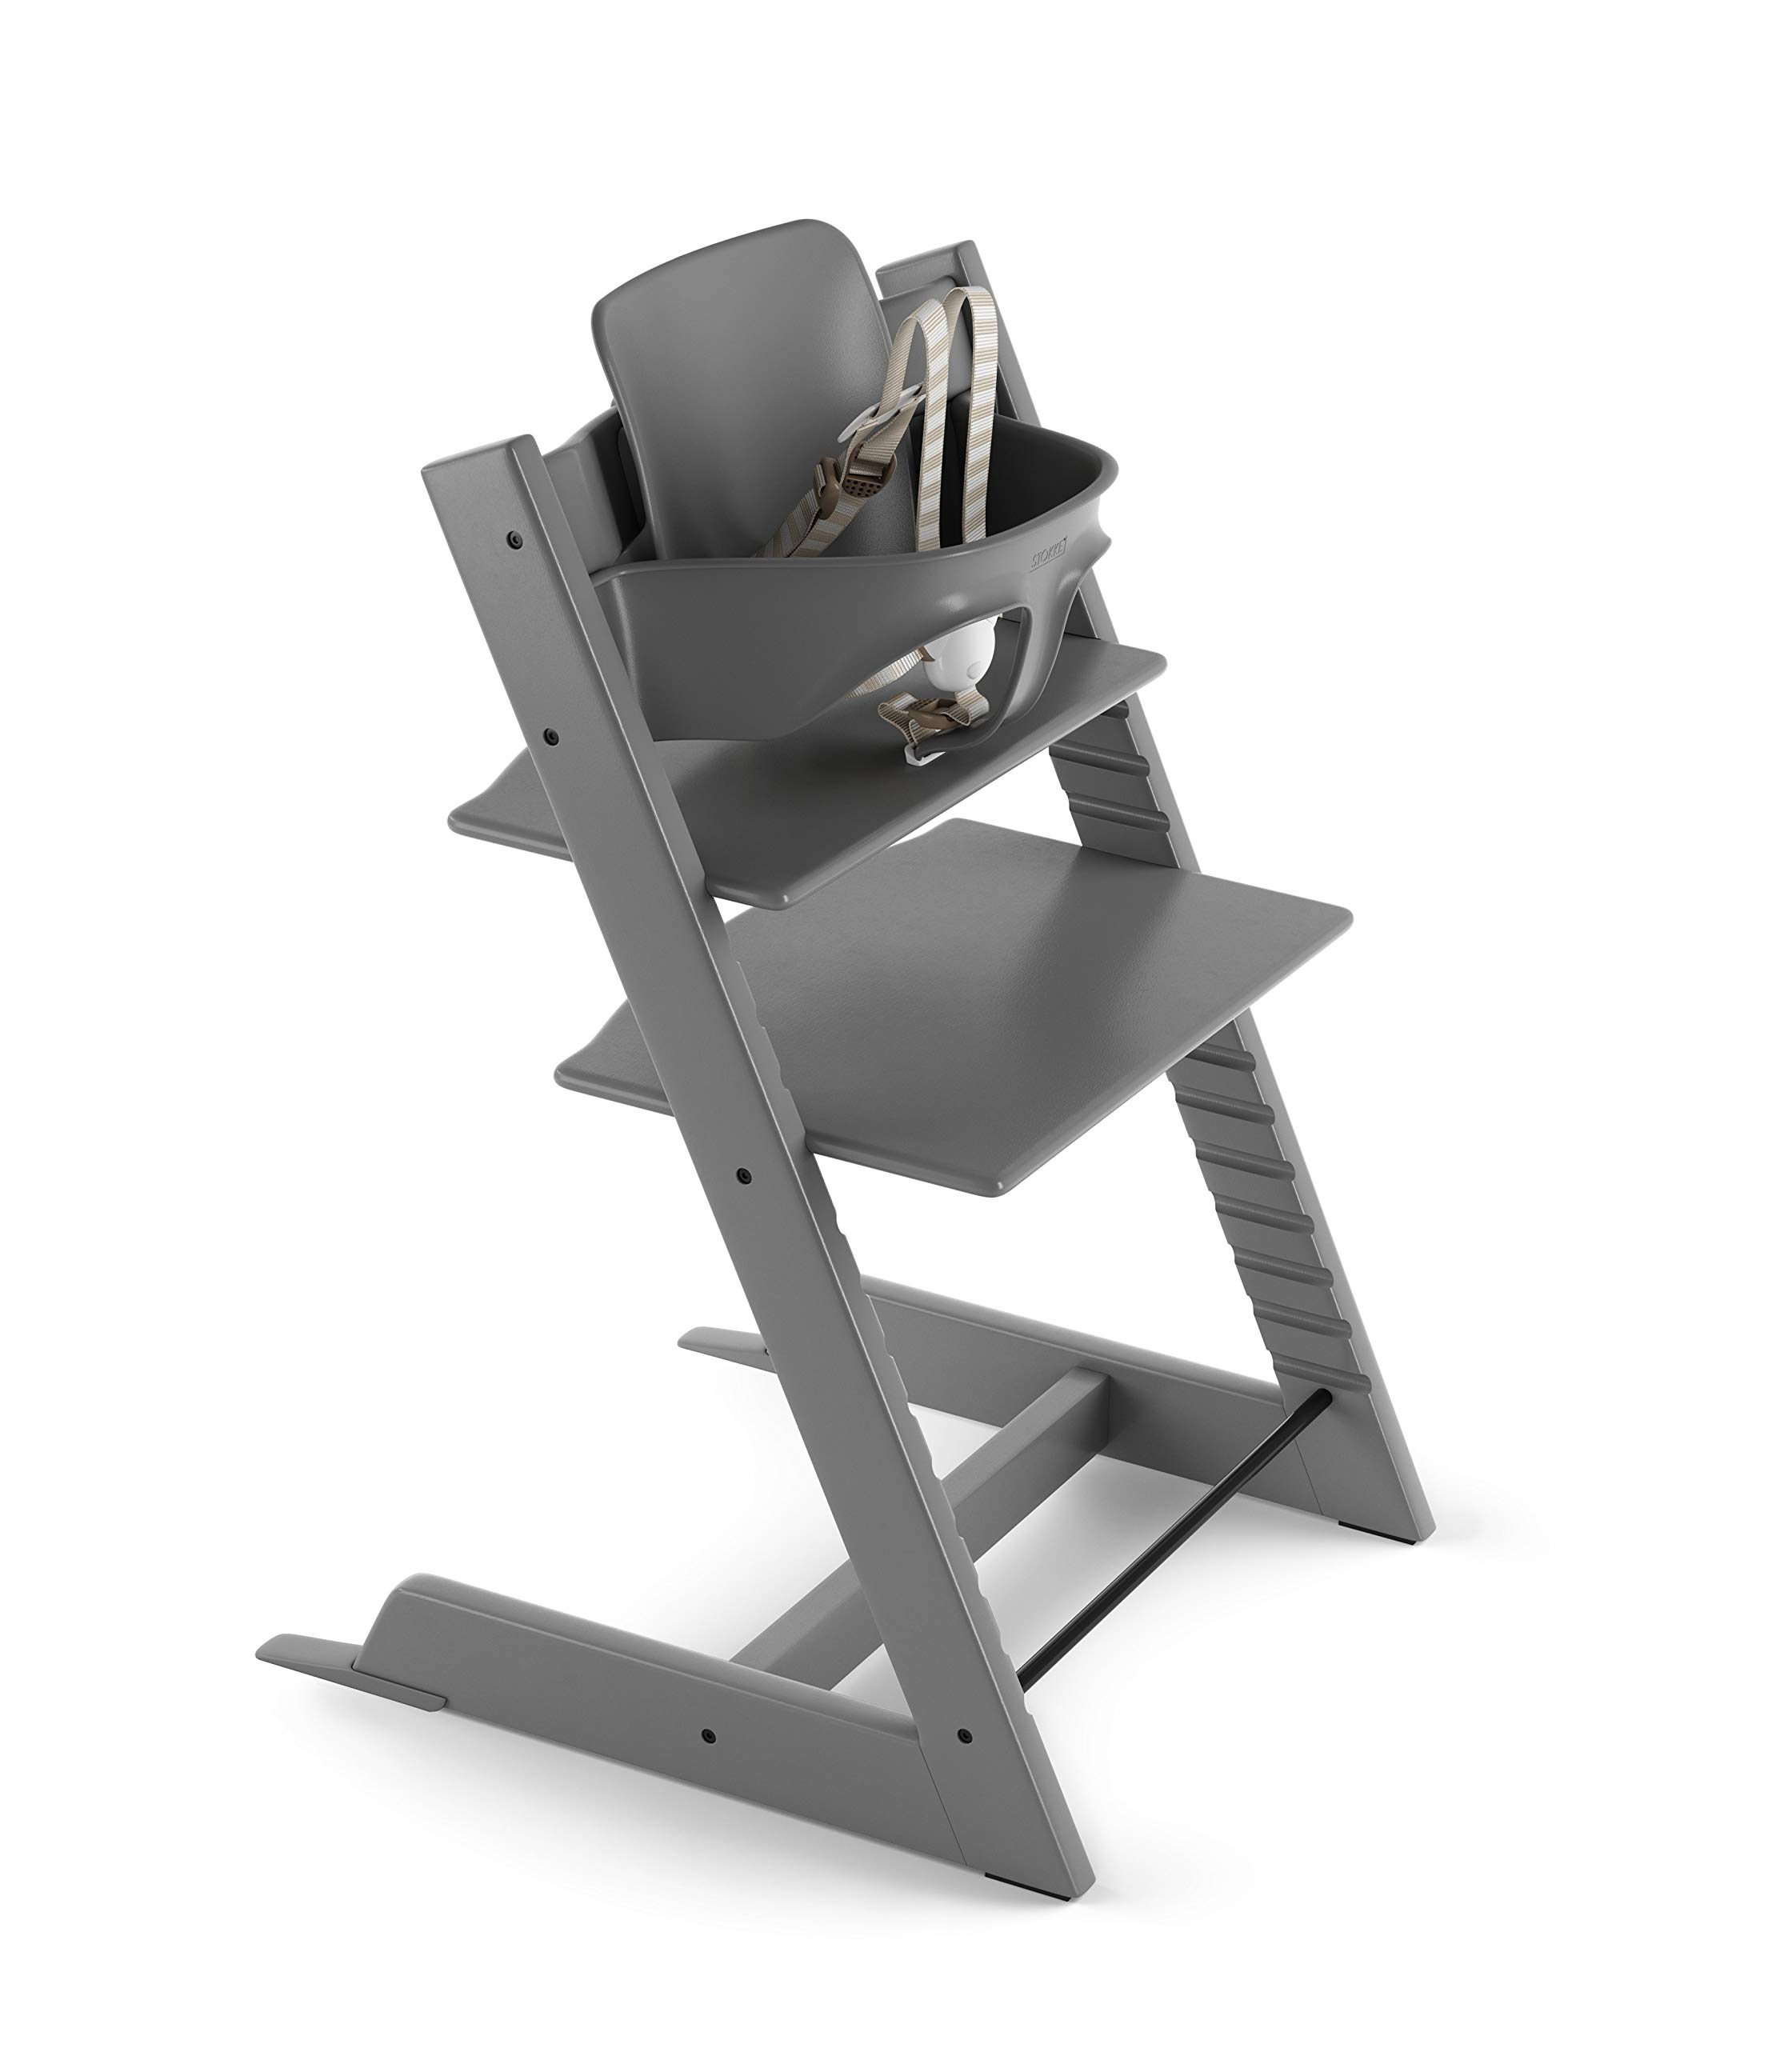 Stokke 2019 Tripp Trapp High Chair, Includes Baby Set, Storm Grey by Stokke